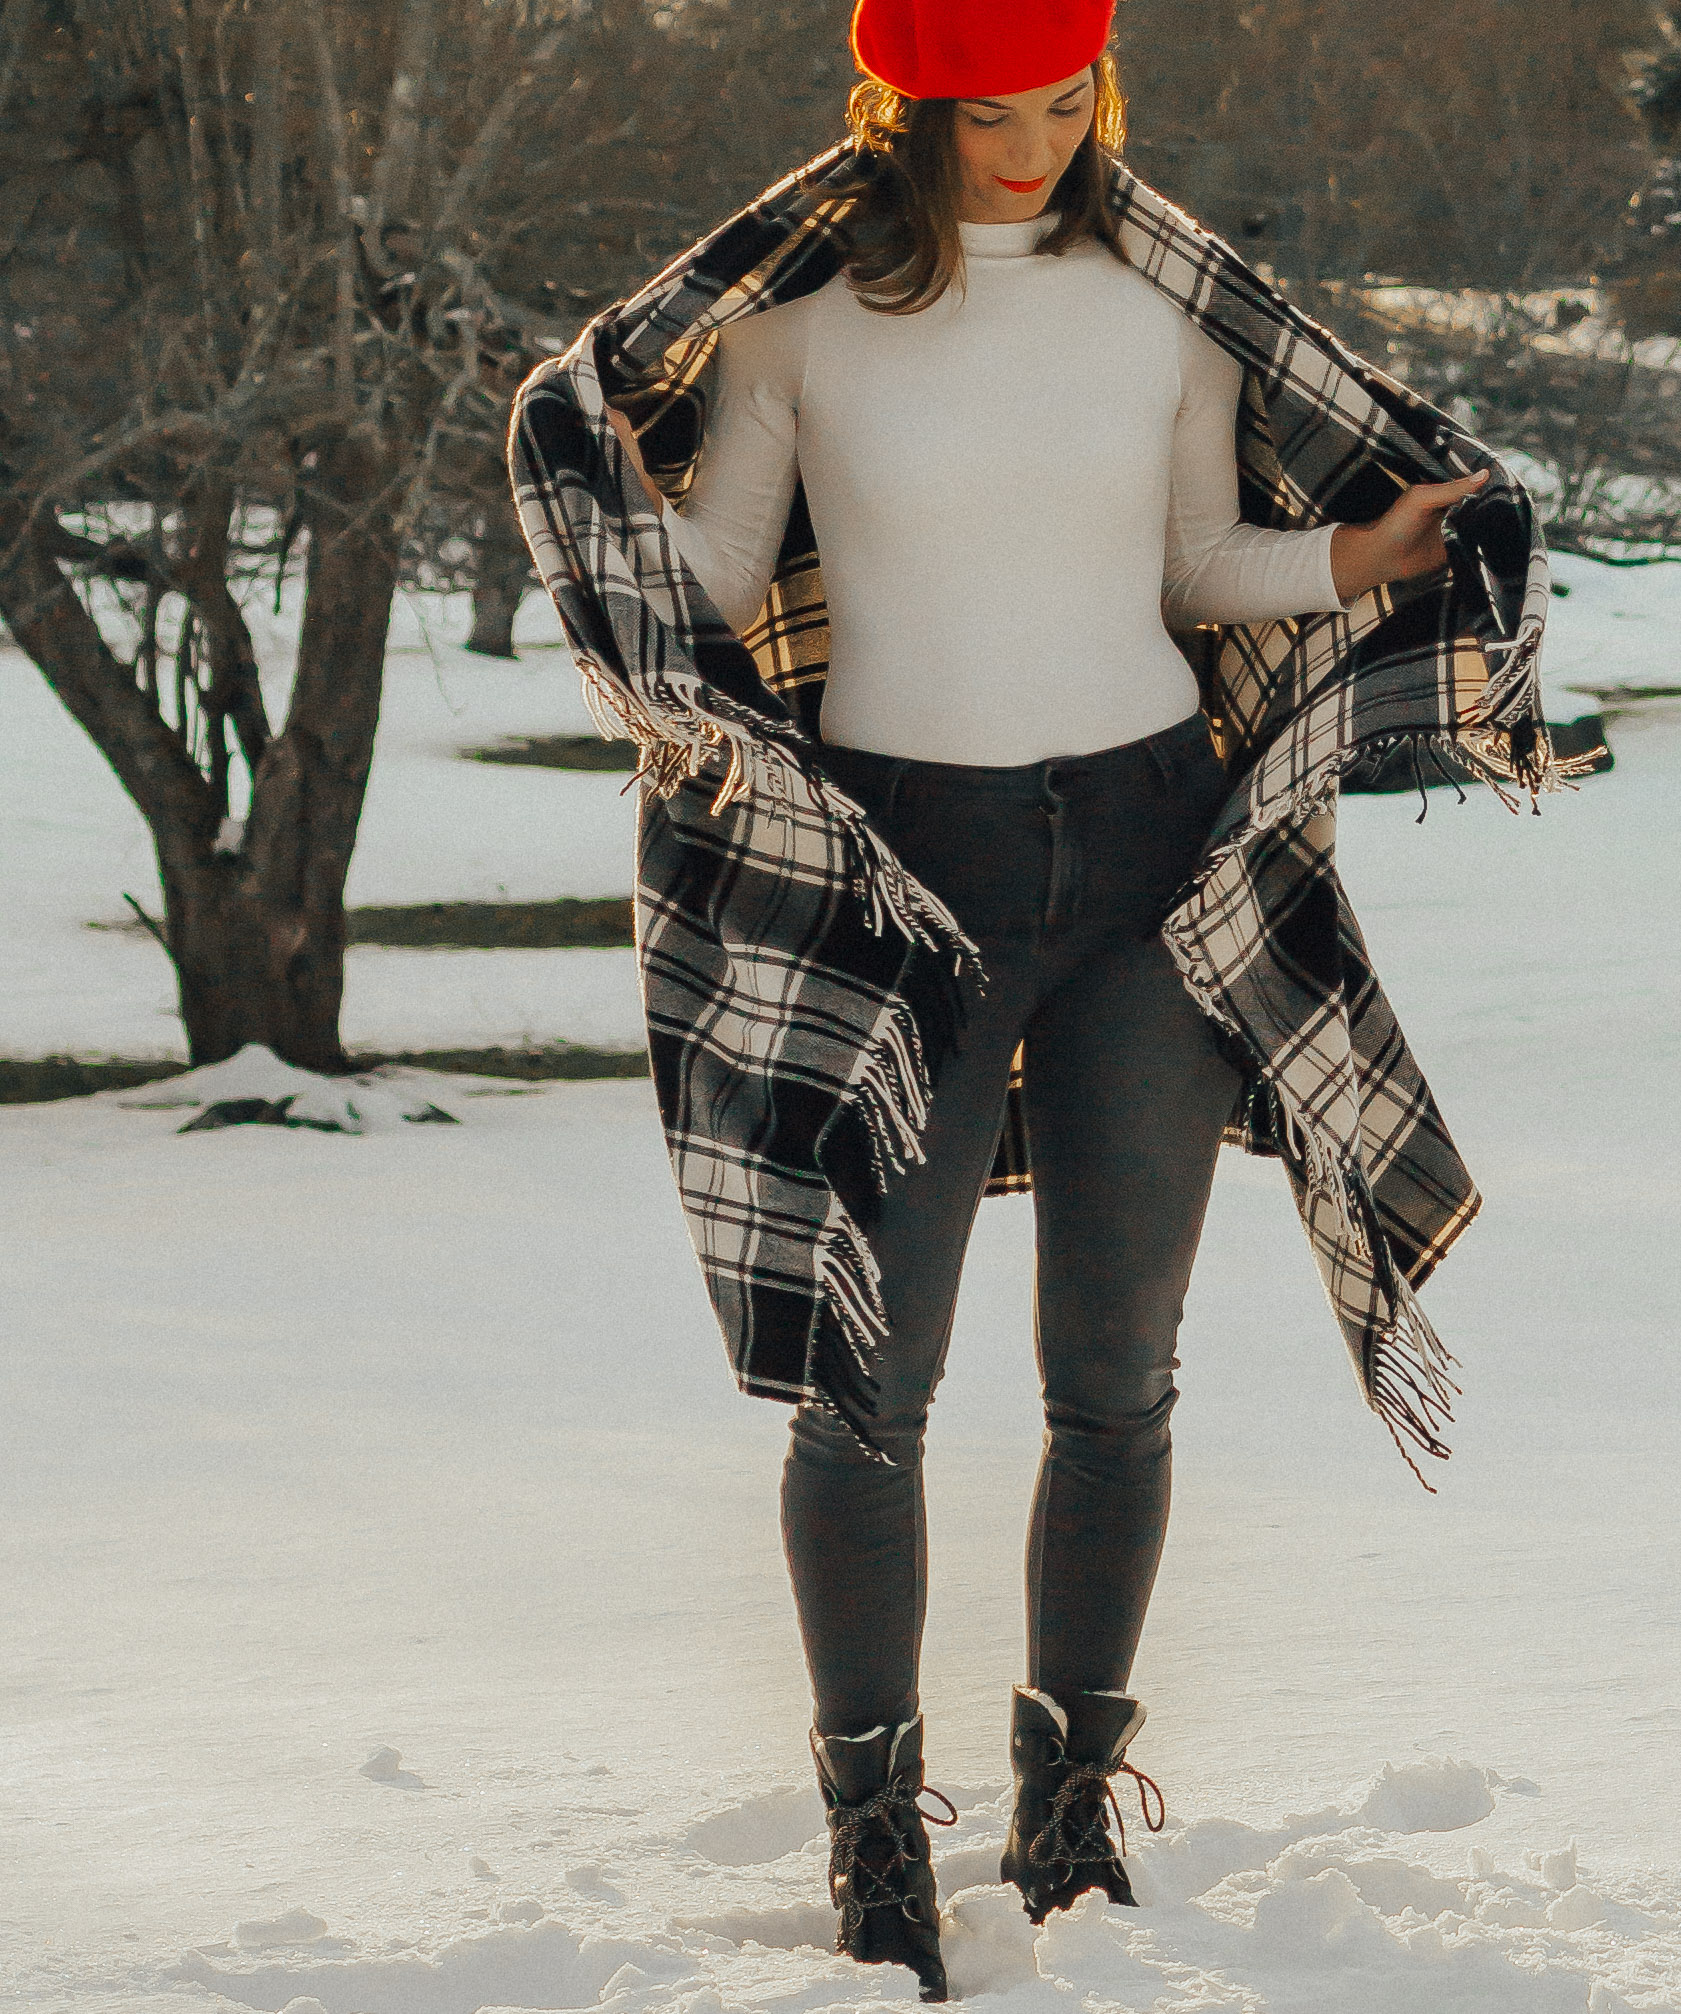 SHOP THE LOOK - RED BERETWHITE BODYSUIT (similar)GREY DENIMBLANKET SCARFWEDGE BOOTS